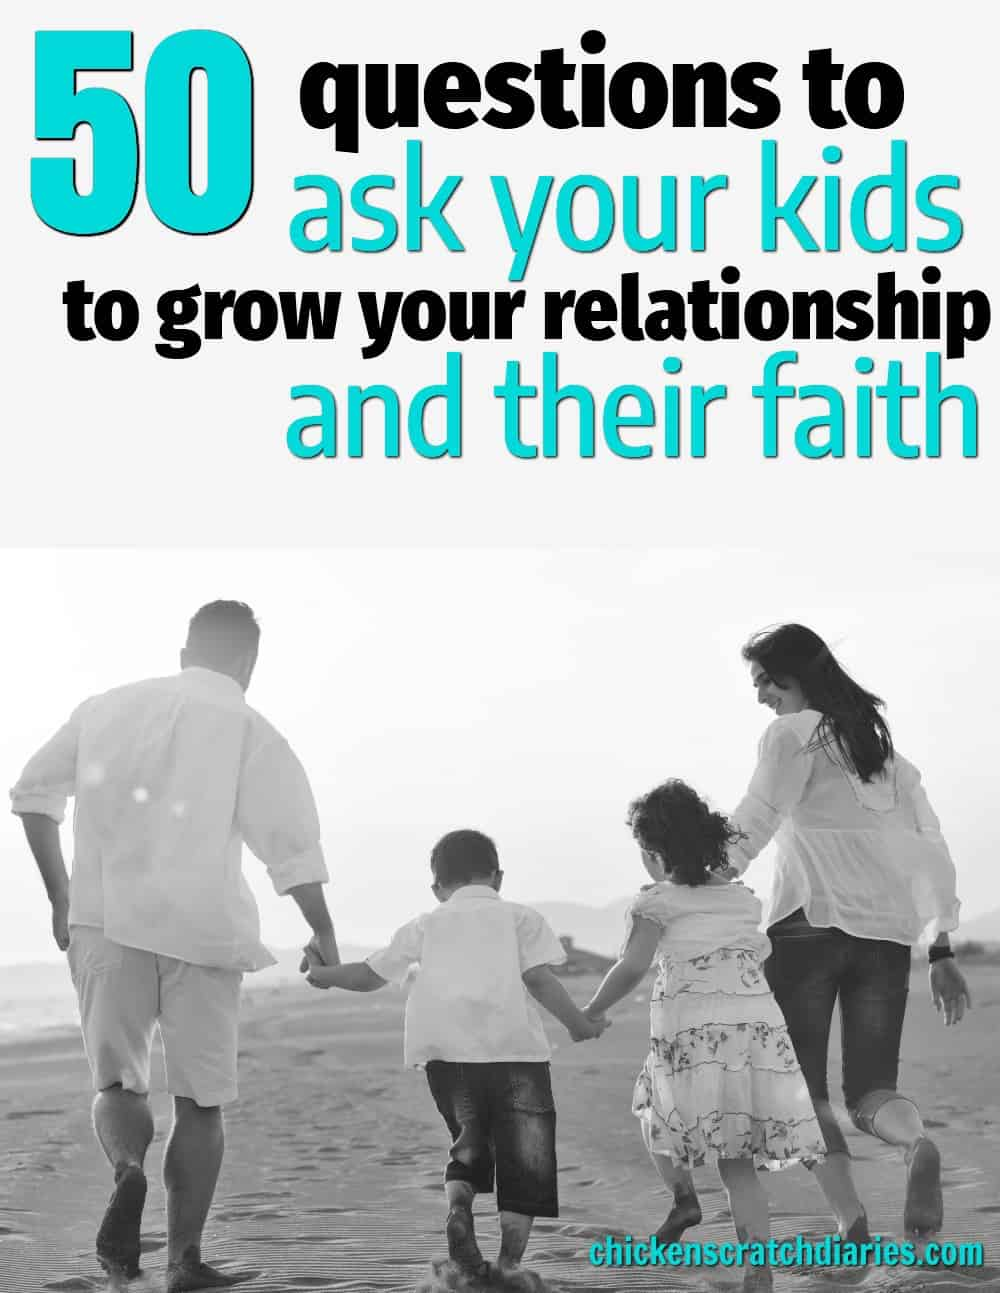 Connecting with kids in a meaningful way doesn't have to be complicated! Loved these 50 ideas to spark thoughtful conversation. #PositiveParenting #ChristianParenting #Moms #Kids